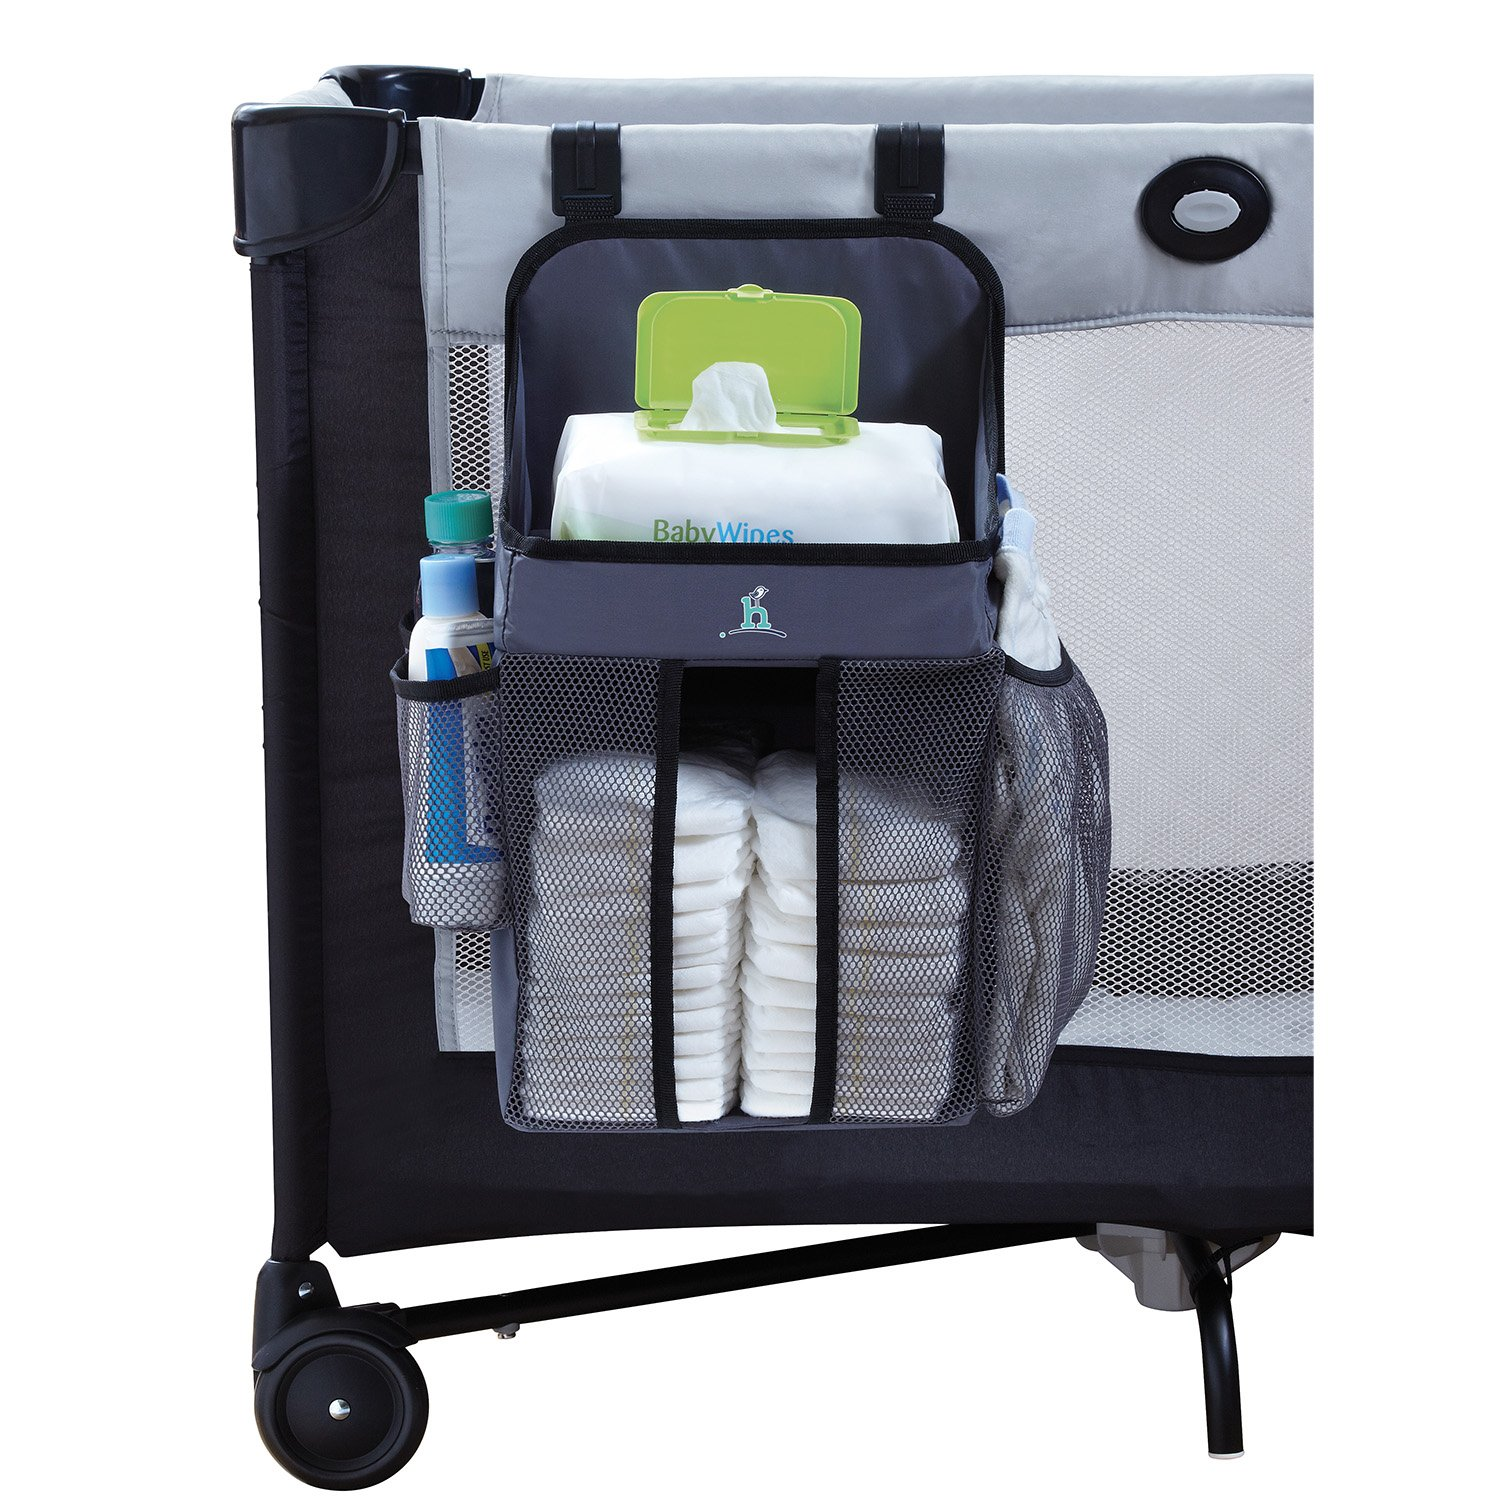 hiccapop Playard Nursery Organizer and Diapers Organizer | Baby Diaper Caddy | Universal Fit for Hanging on All Playards | Store Lotion, Wet Wipes and More by hiccapop